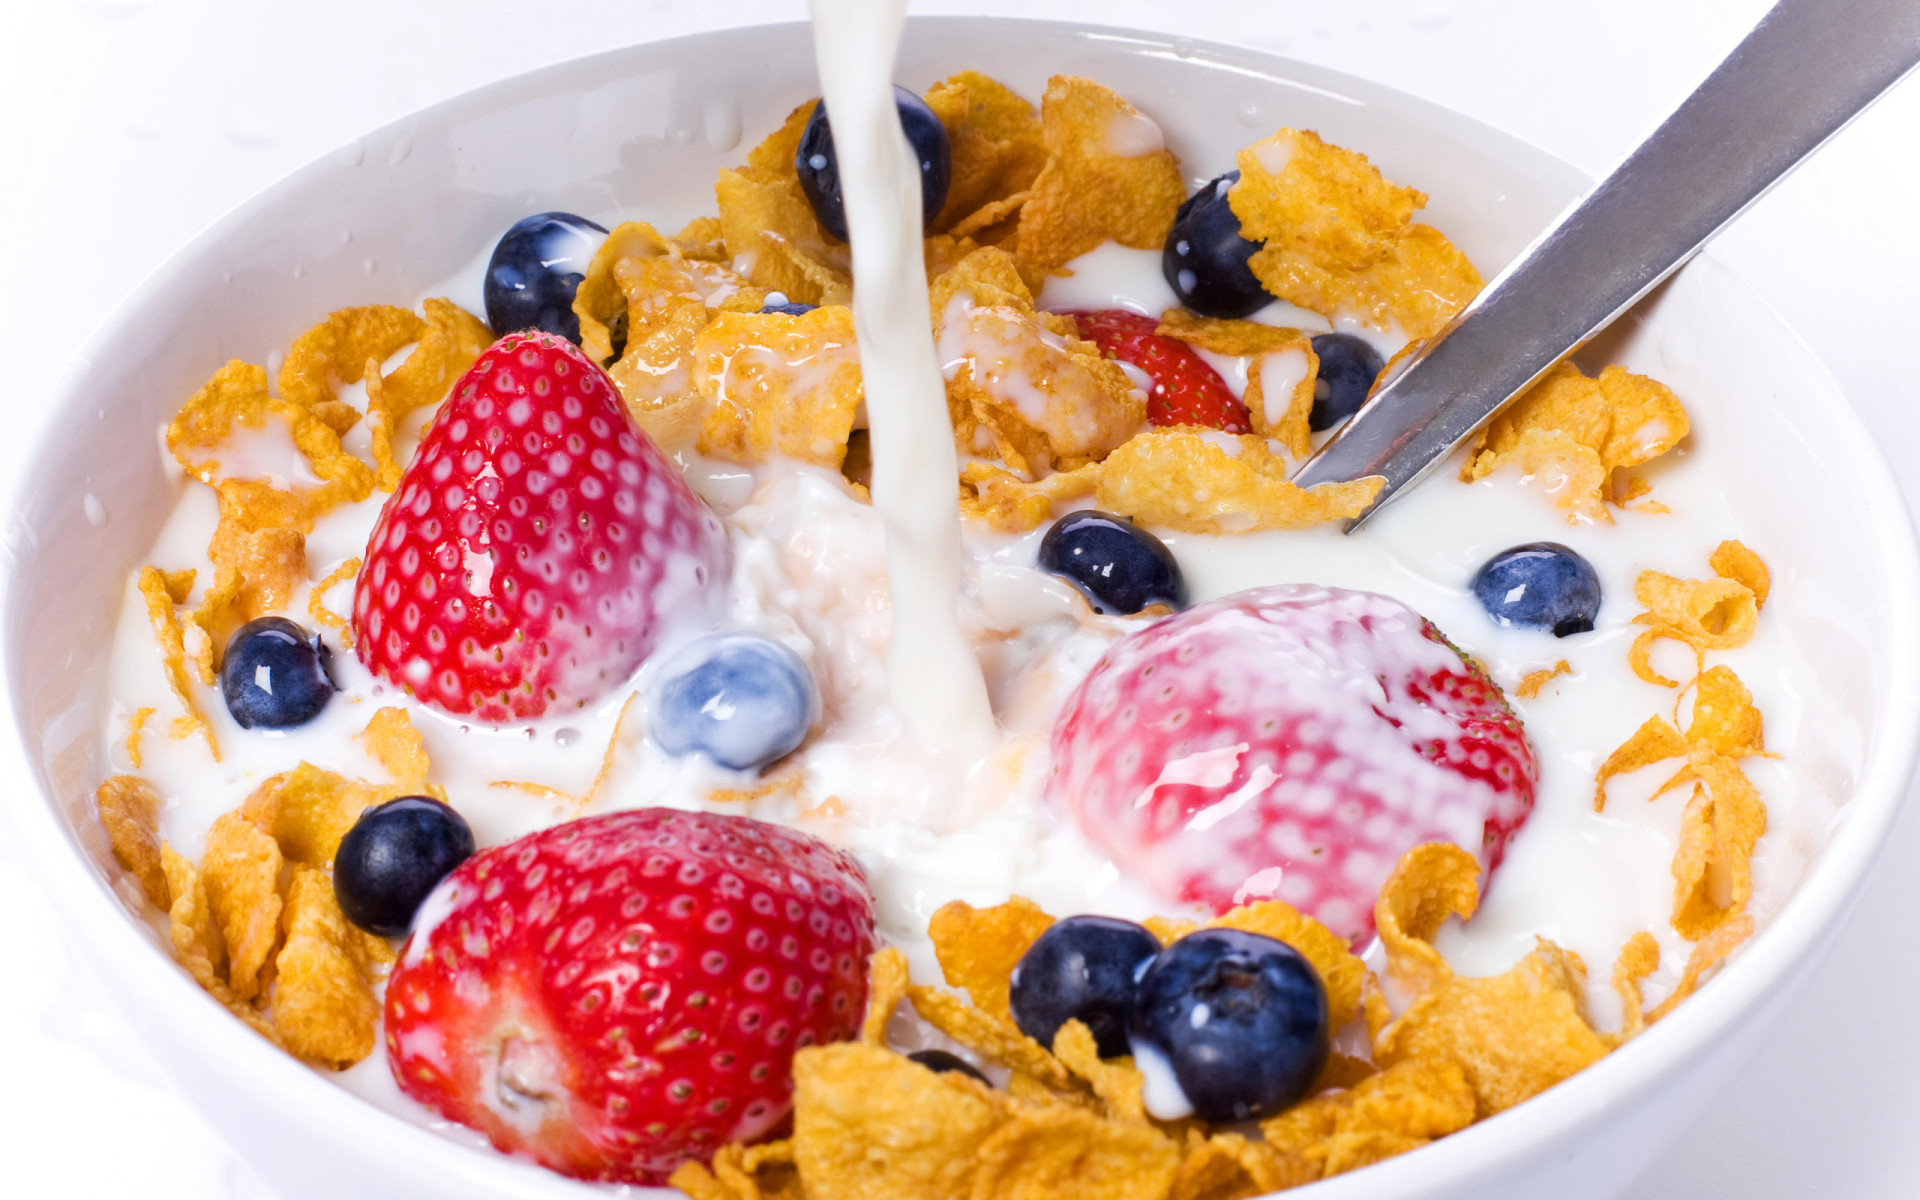 Healthy Nutritious Breakfast  Tasty and nutritious breakfast wallpapers and images